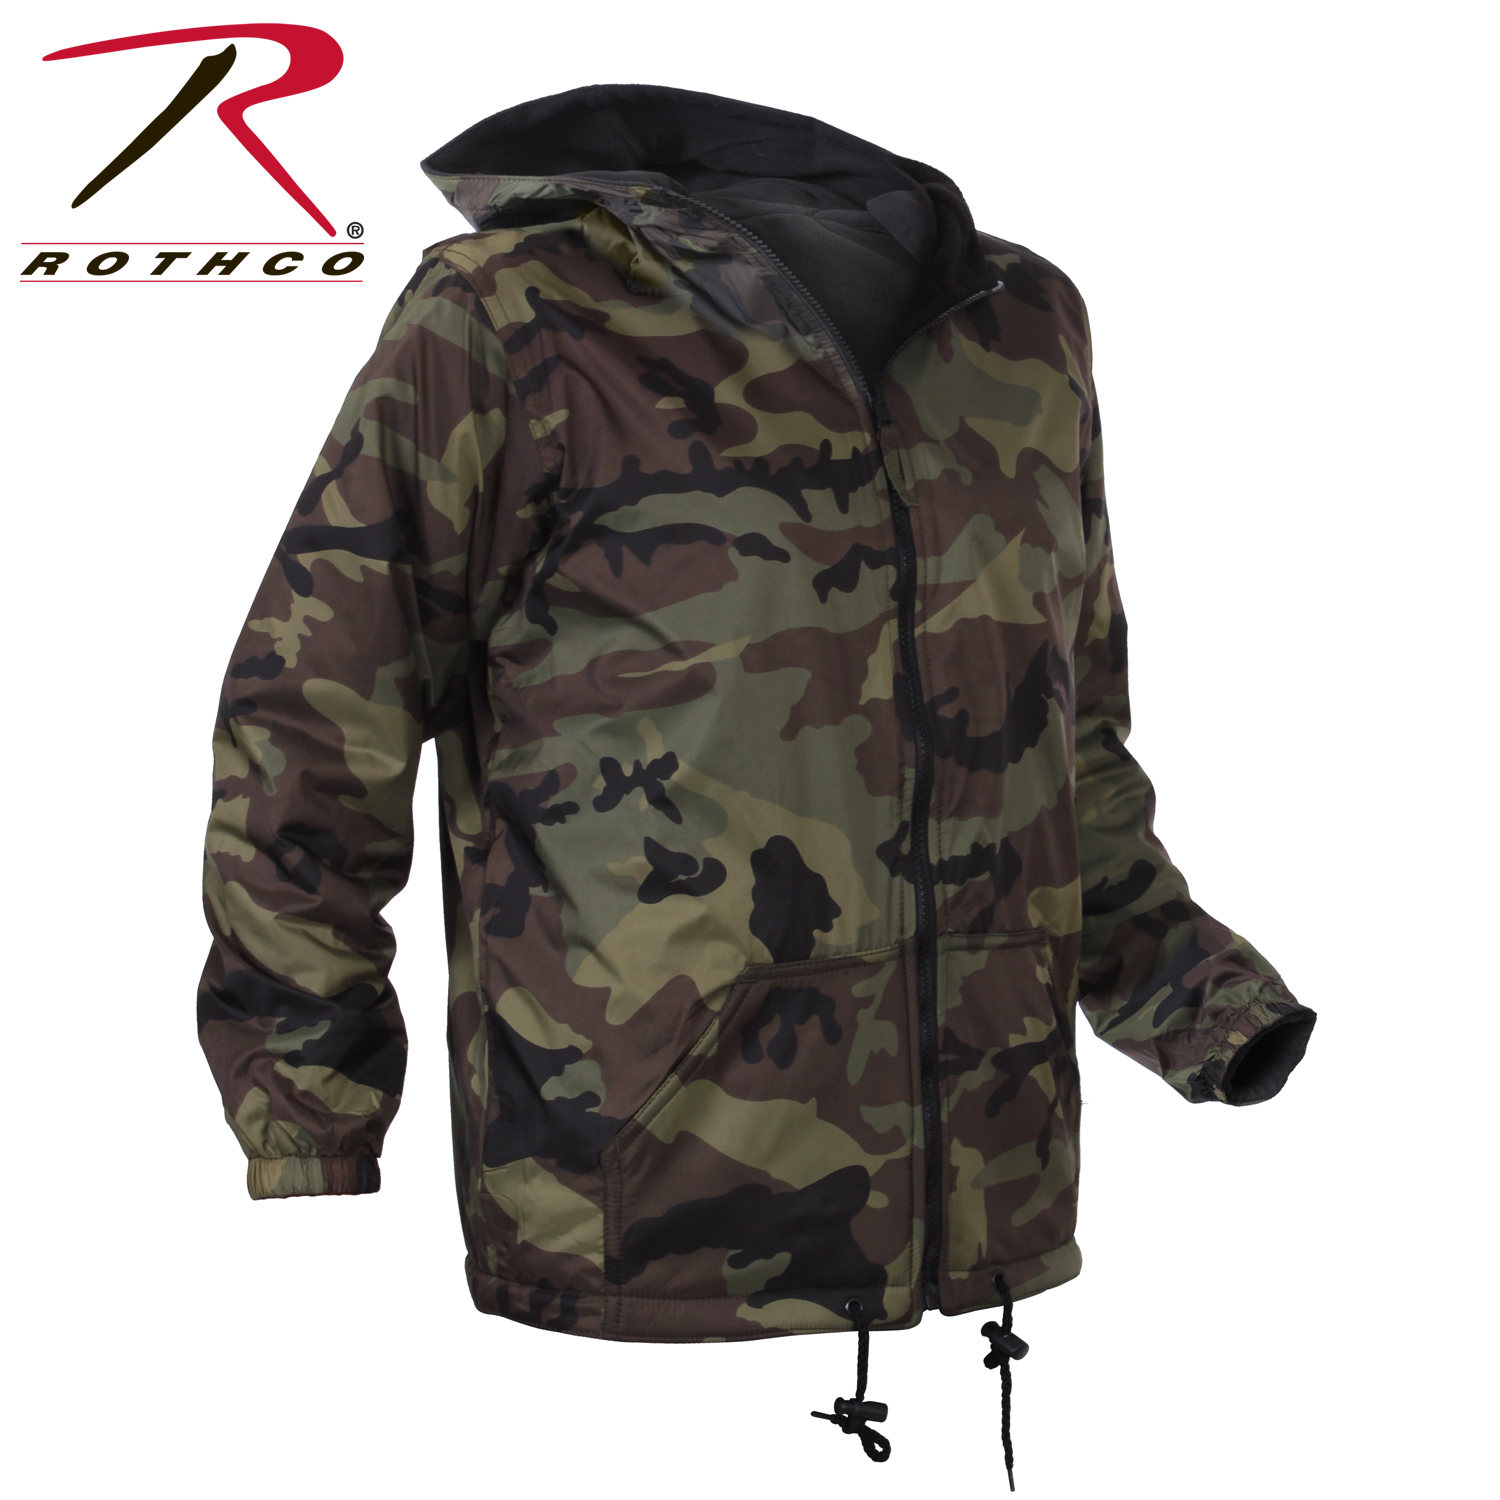 Kids' Hunting Clothing & Accessories Get your youngster prepared for the field with kids' hunting clothing and accessories from Cabela's. Shop hunting outerwear, layering clothes, lightweight hunting clothing, headwear and accessories in youth sizes.